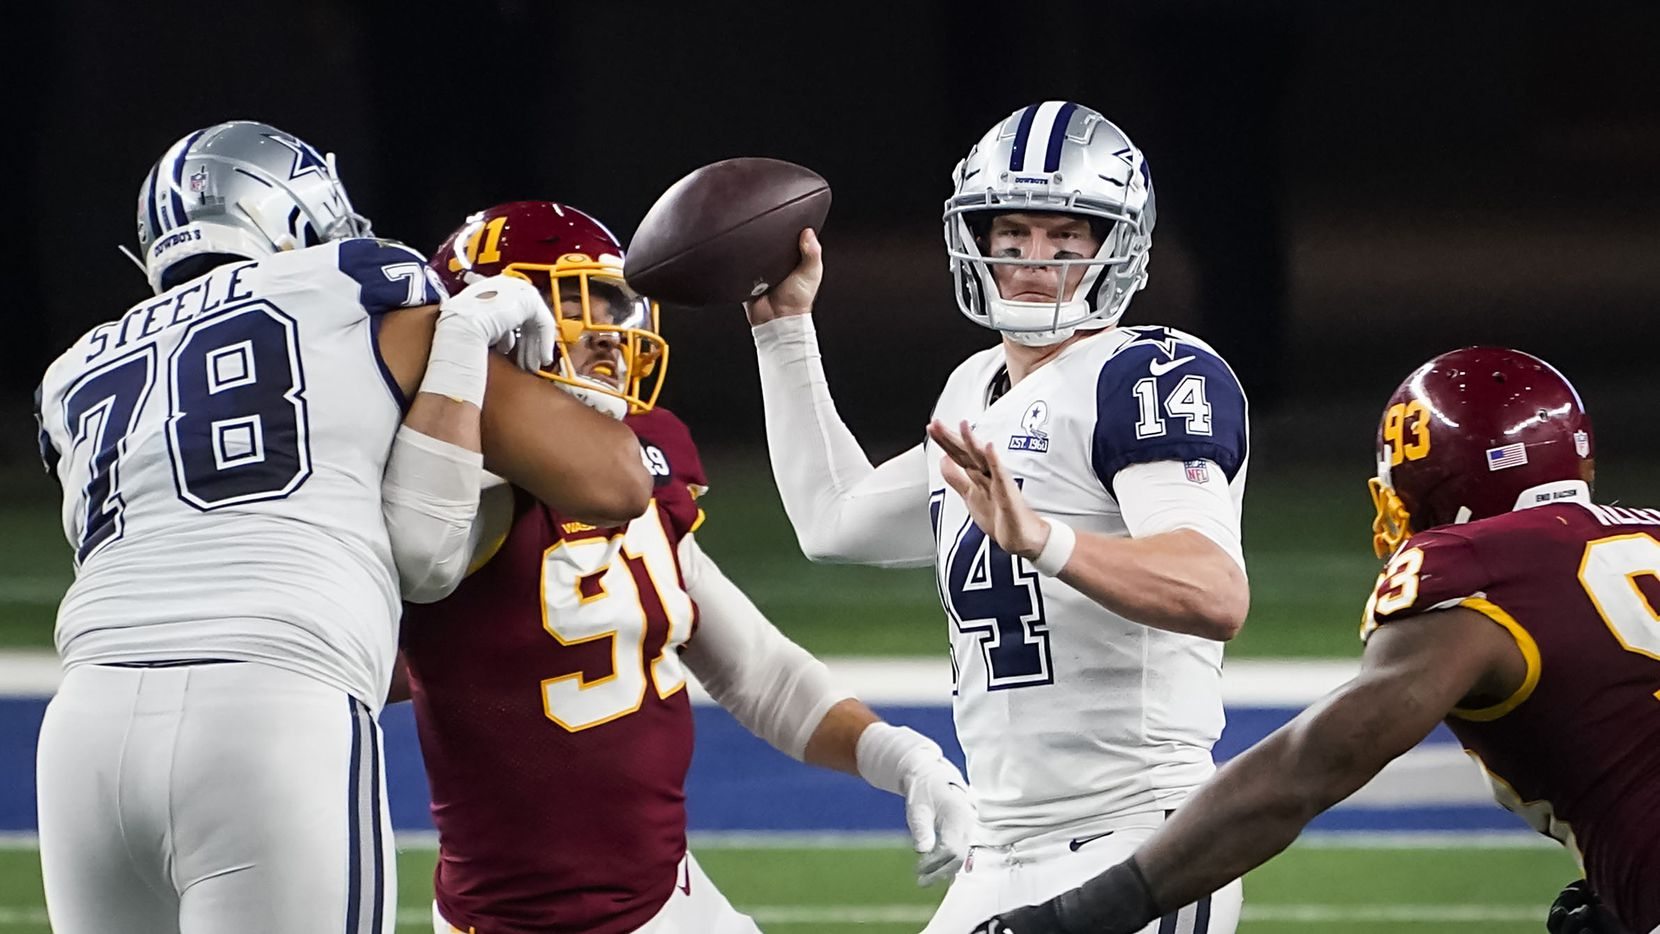 Cowboys quarterback Andy Dalton (14) looks to pass as offensive tackle Terence Steele (78) works against Washington defensive end Ryan Kerrigan (91) during the fourth quarter of a game at AT&T Stadium on Thursday, Nov. 26, 2020, in Arlington.